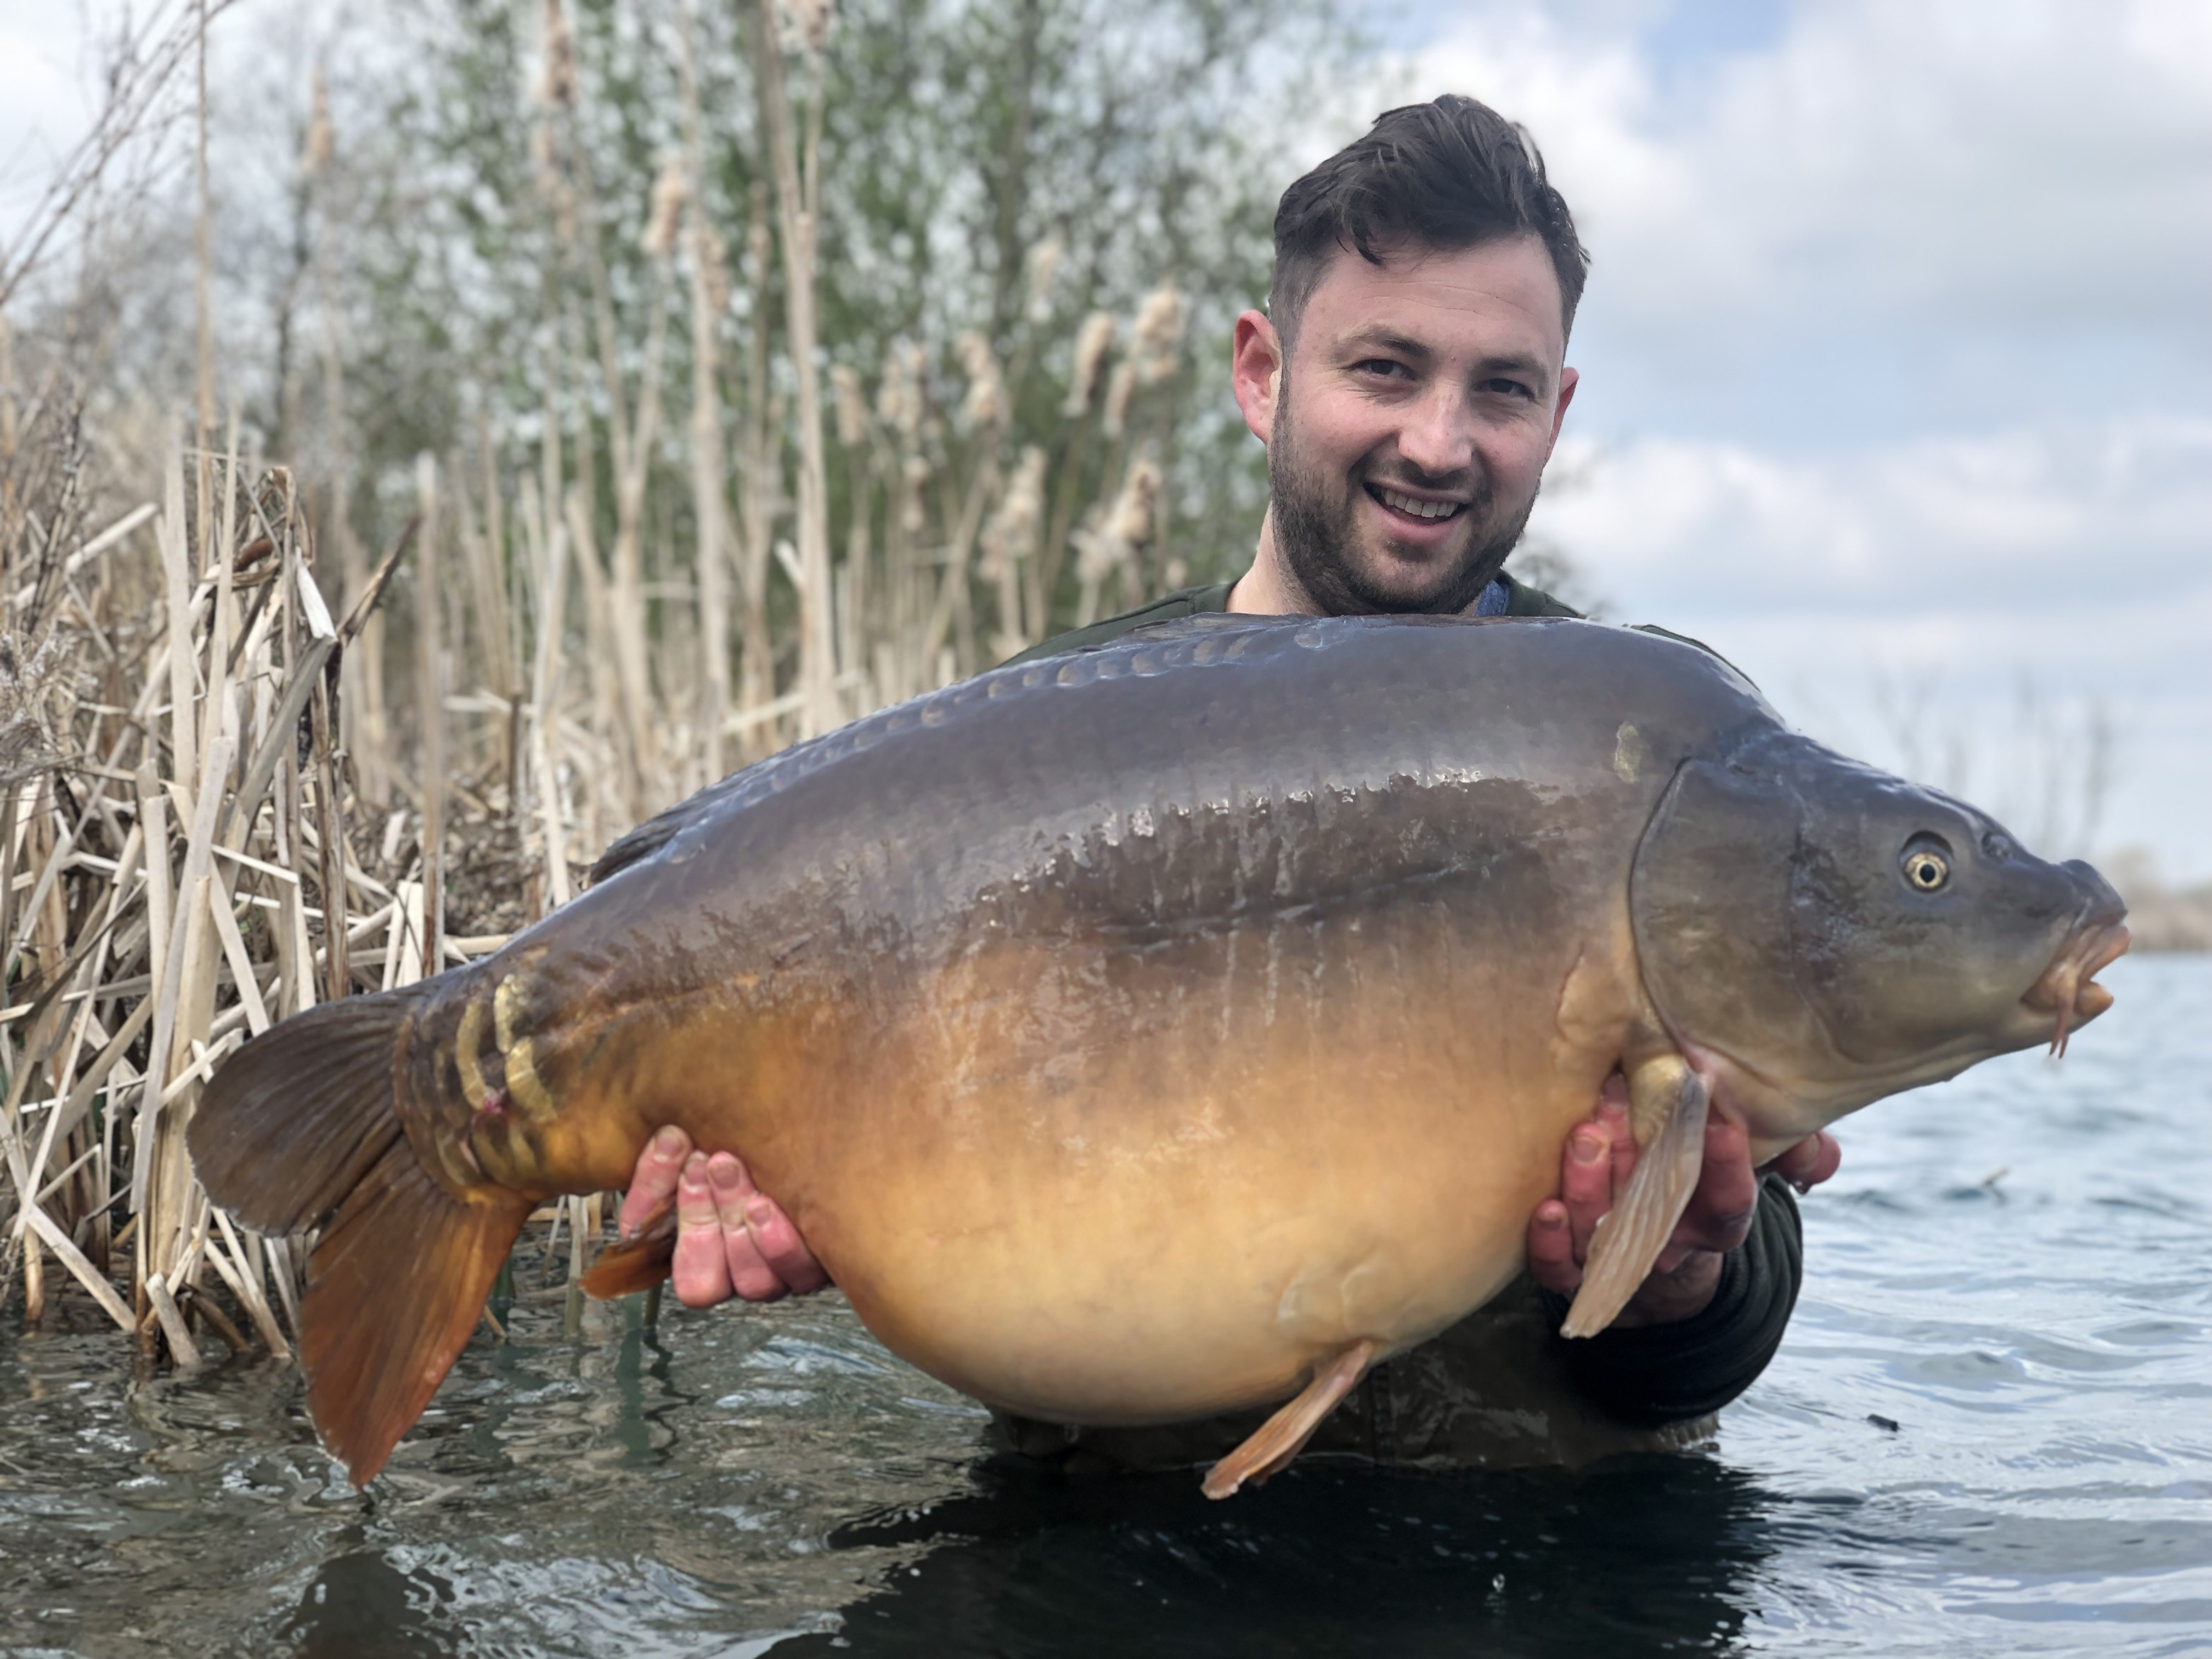 46lb 04oz 'Richie' caught on 3 kilo of The Edge and 18mm Edge Wafter